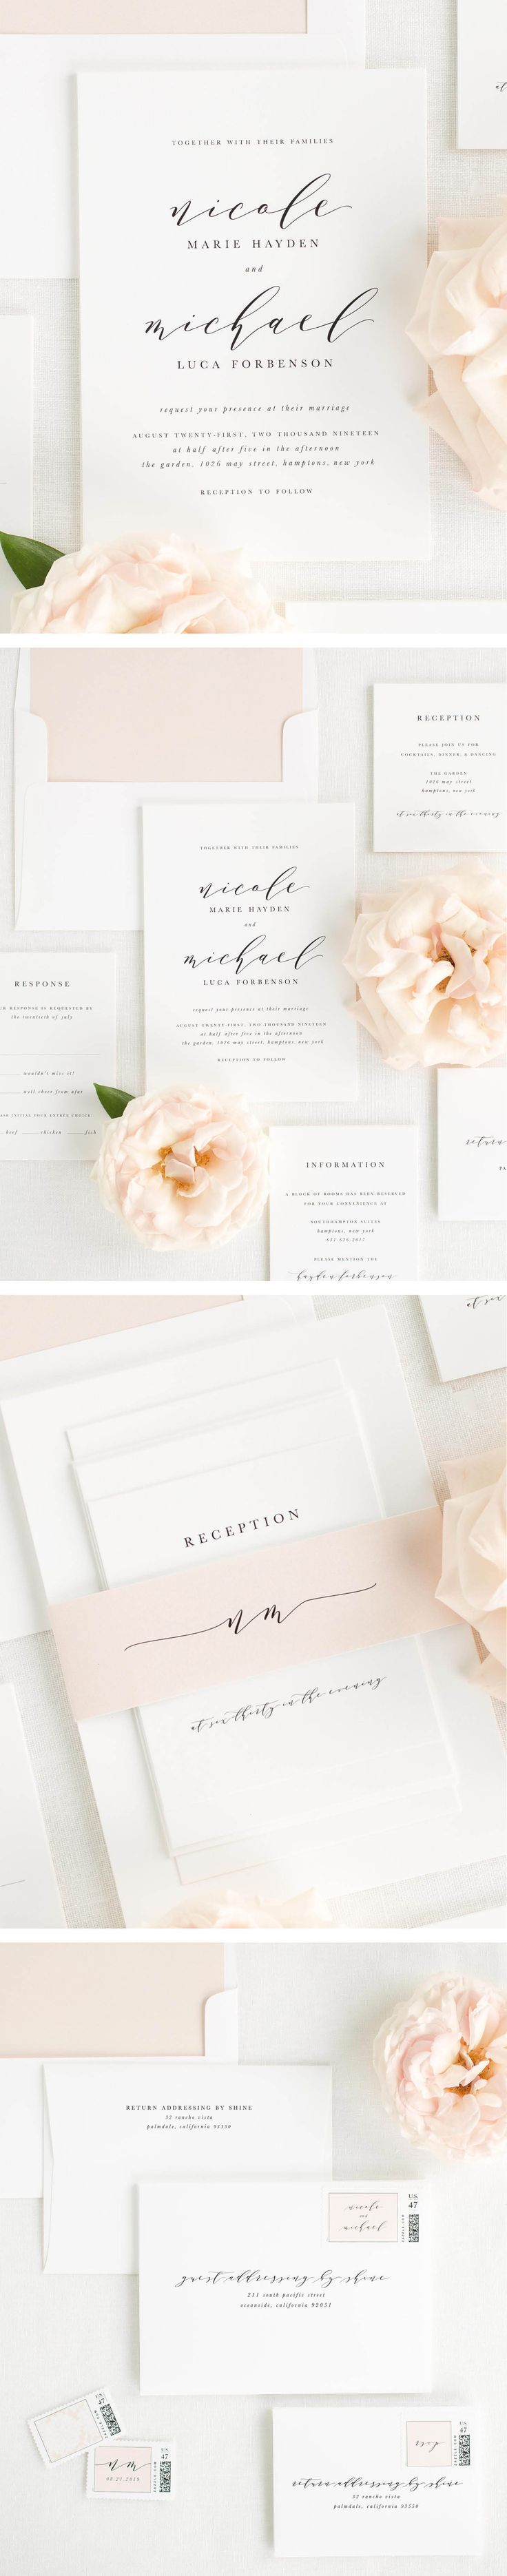 63 Best Stationery Inspiration Images On Pinterest Wedding